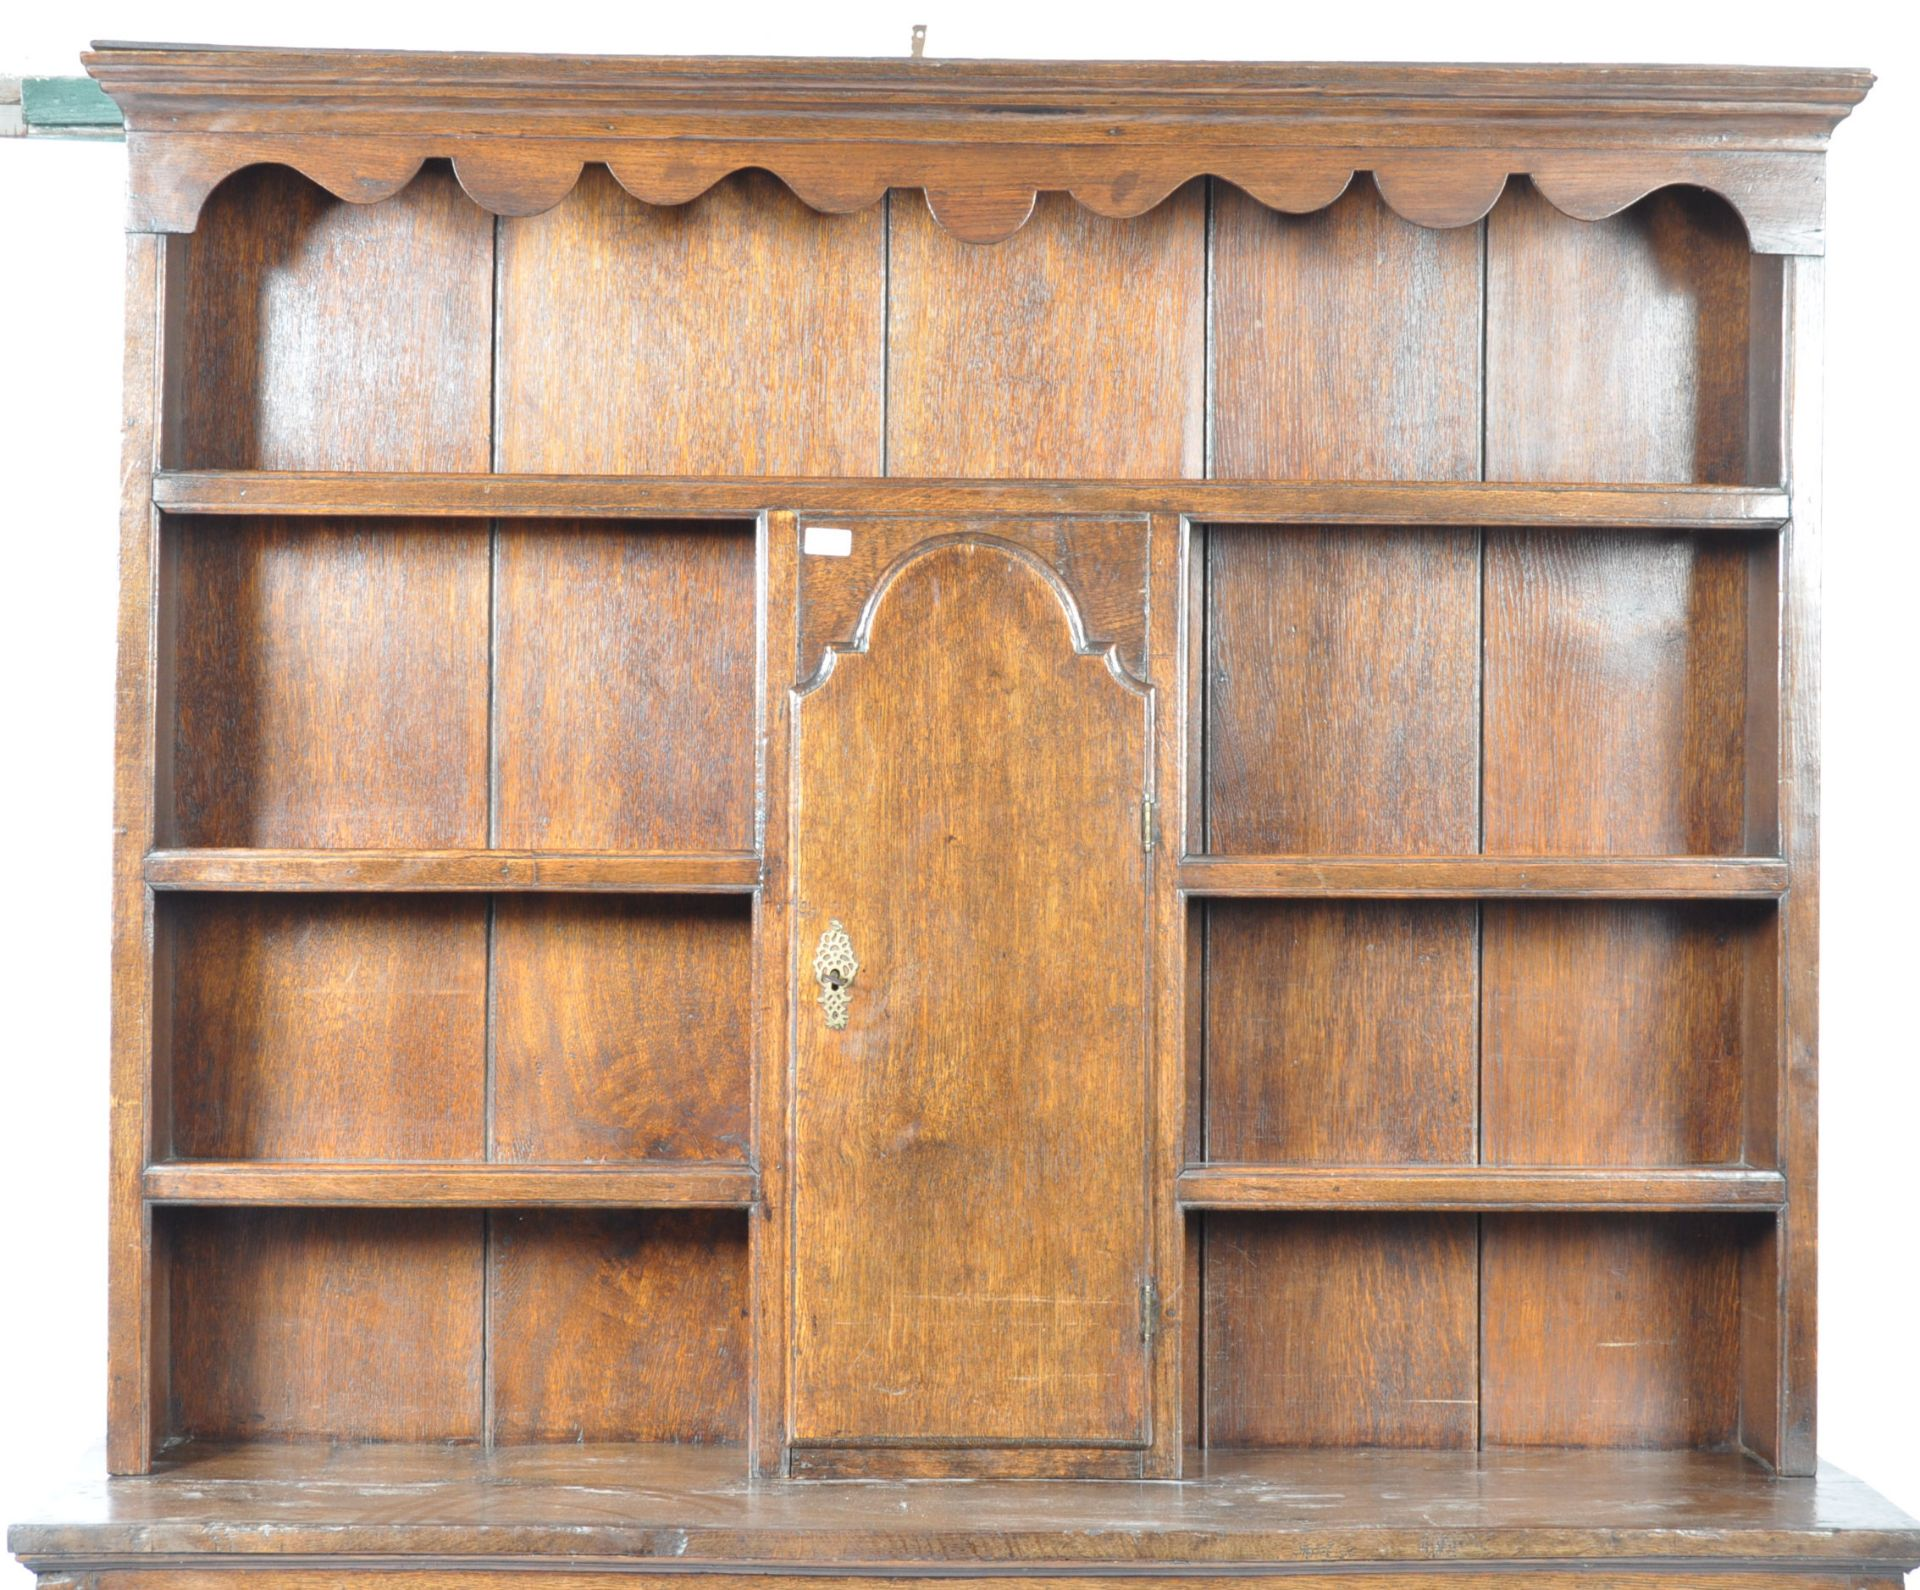 Los 290 - 18TH CENTURY GEORGIAN ENGLISH ANTIQUE OAK DRESSER